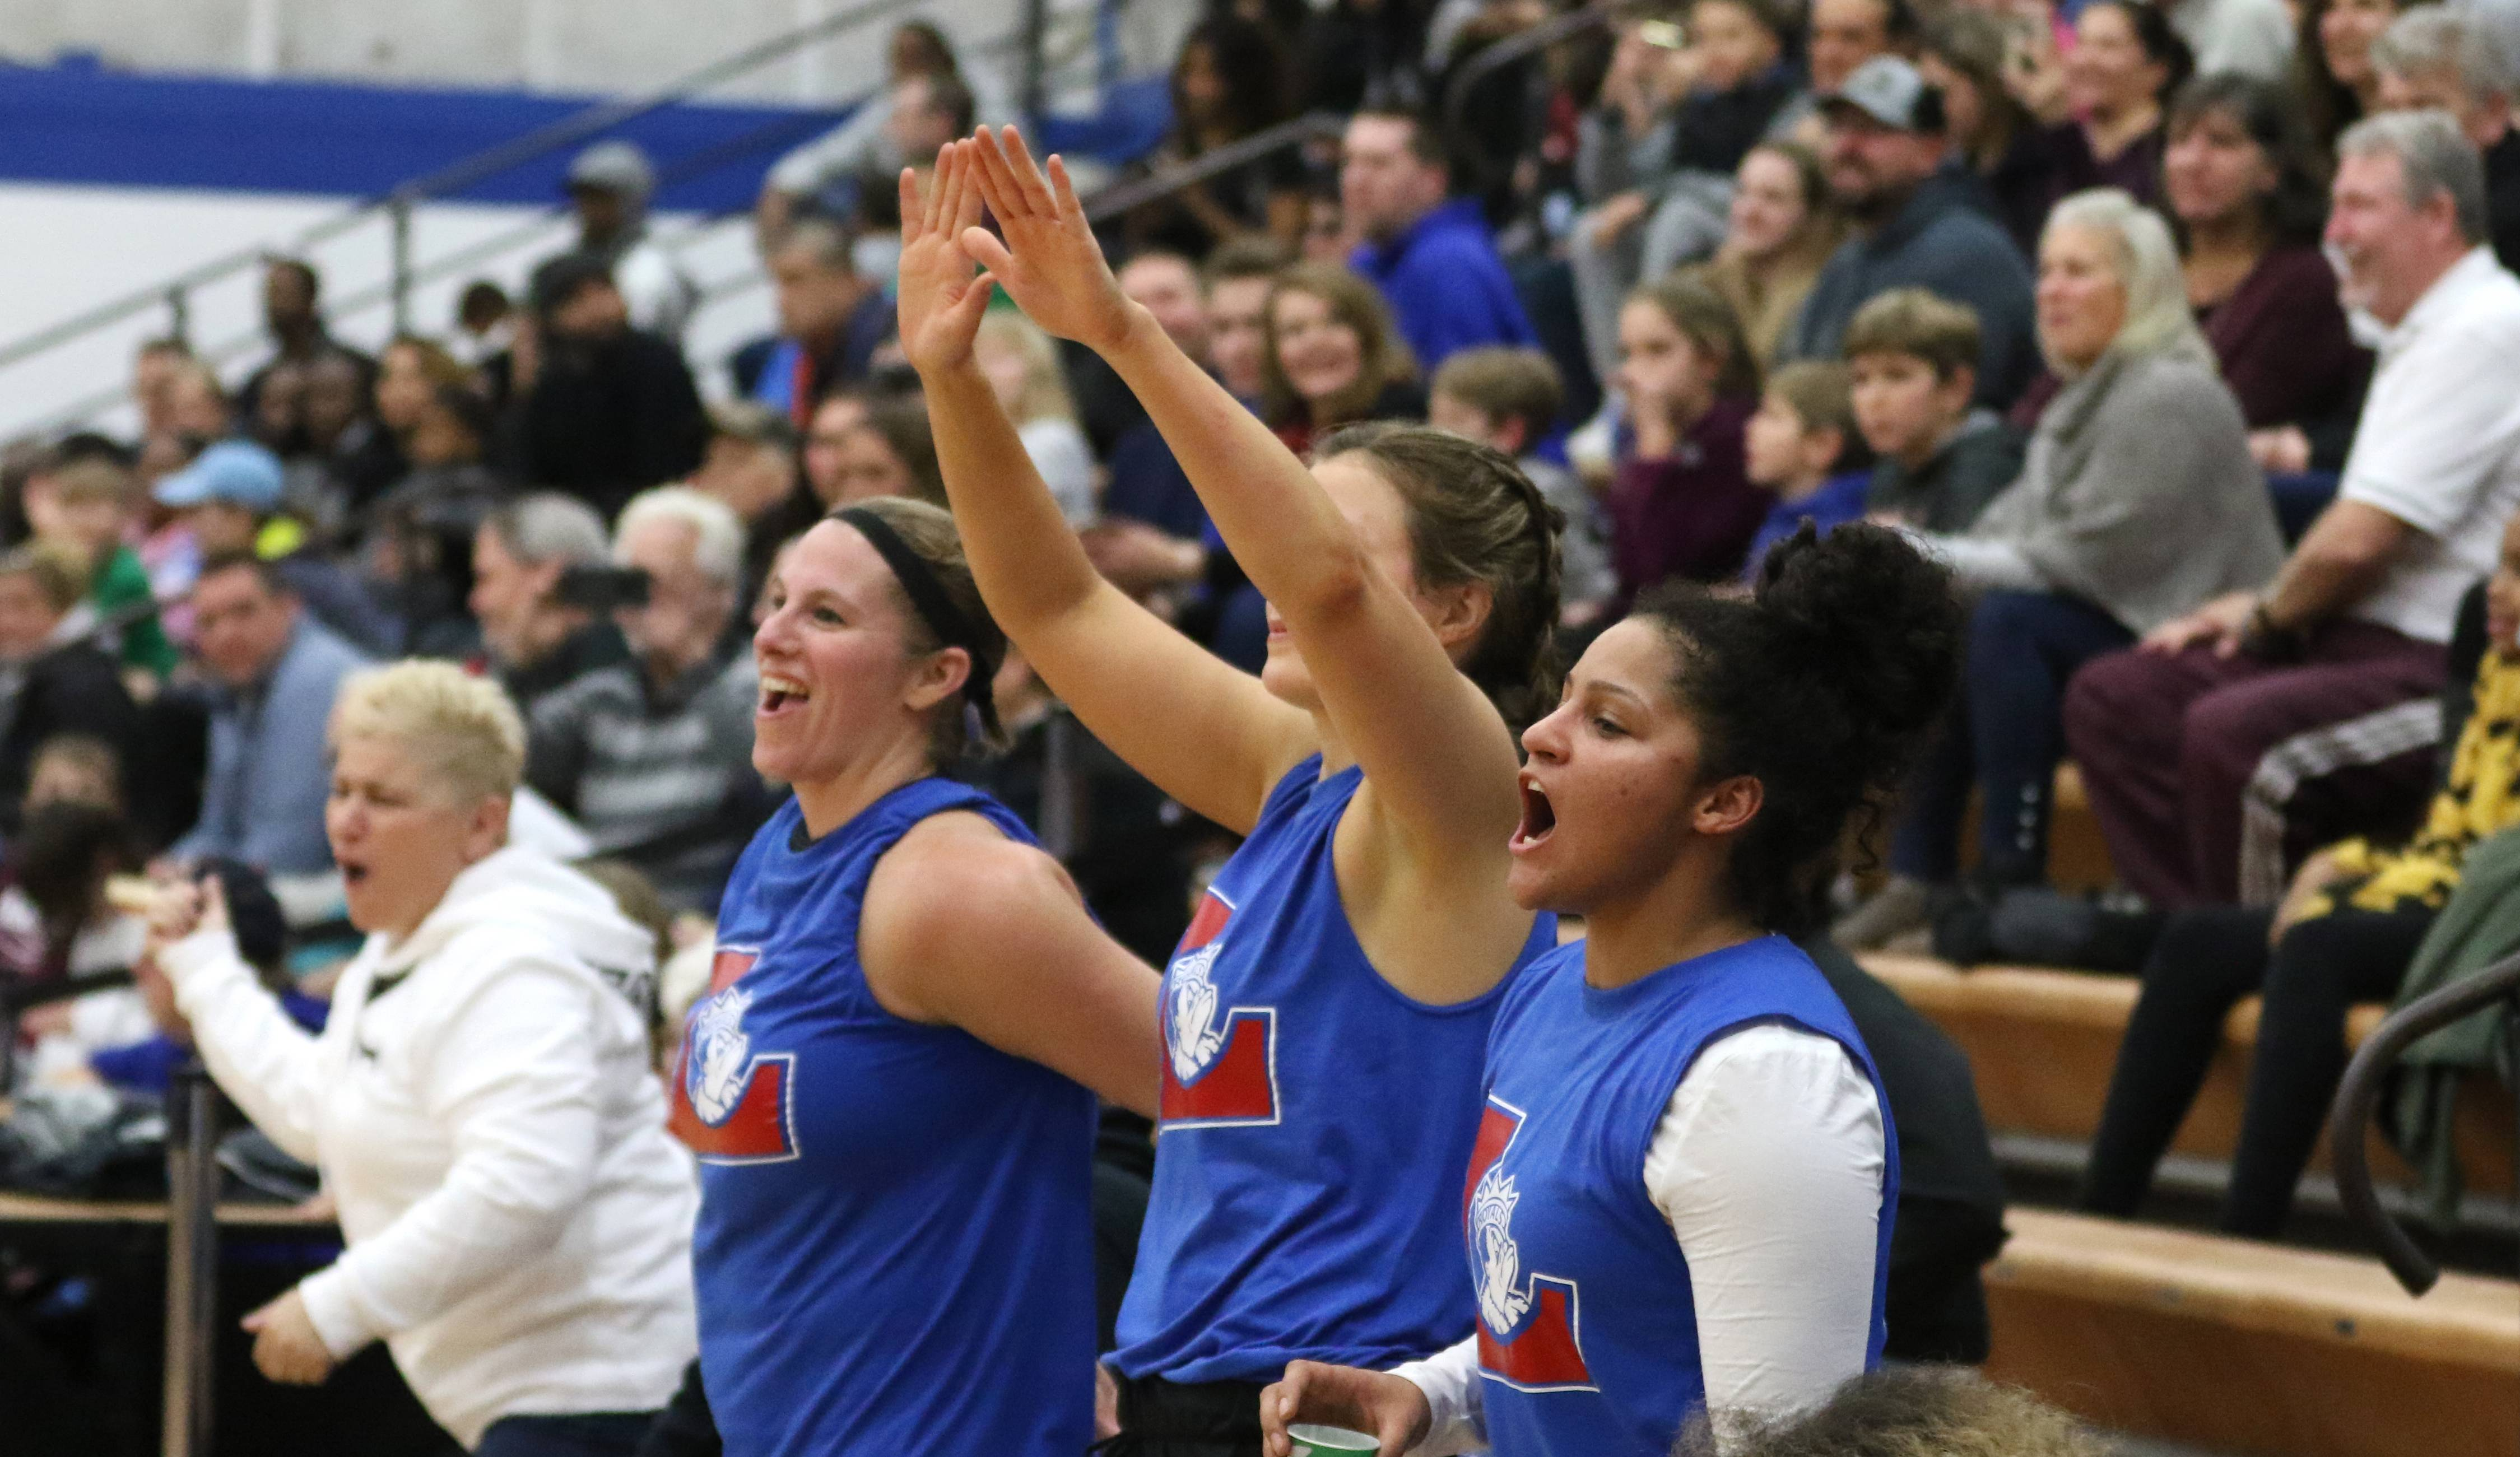 Larkin alumni and fans get revved up at the conclusion of the women's game as part of Larkin vs. Elgin Part 2 alumni games at Larkin High School in Elgin Wednesday night.